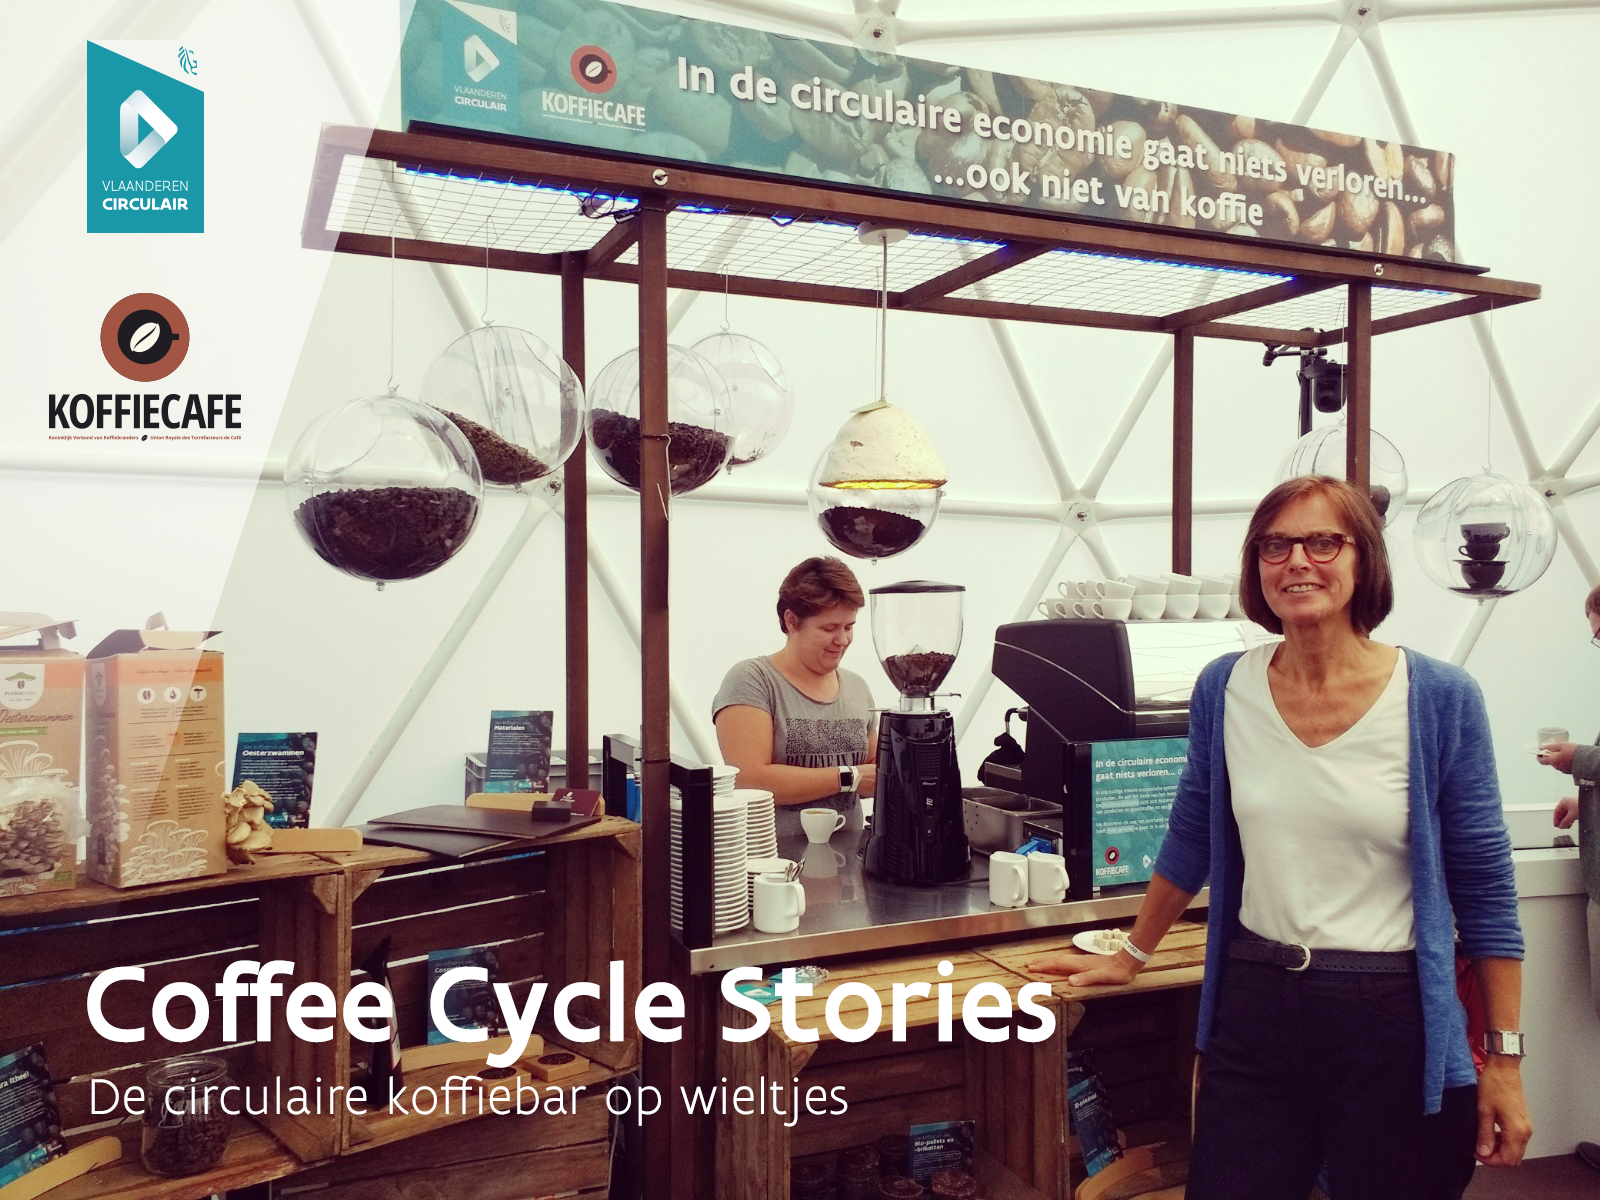 Coffee Cycle Stories